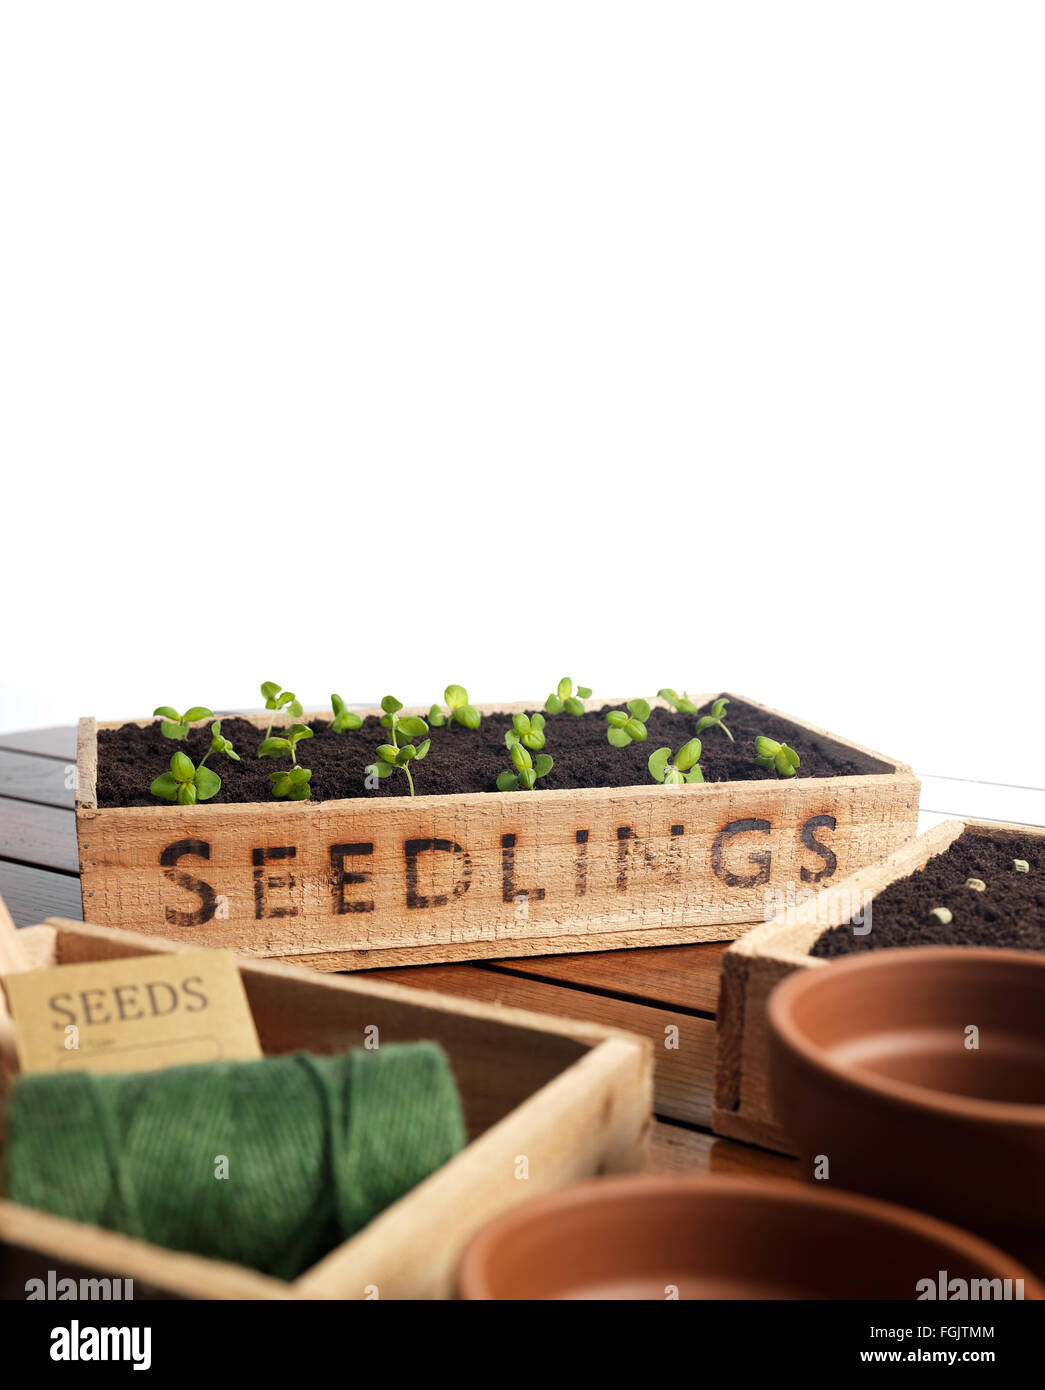 Seedling tray with organic soil and gardening equipment - Stock Image